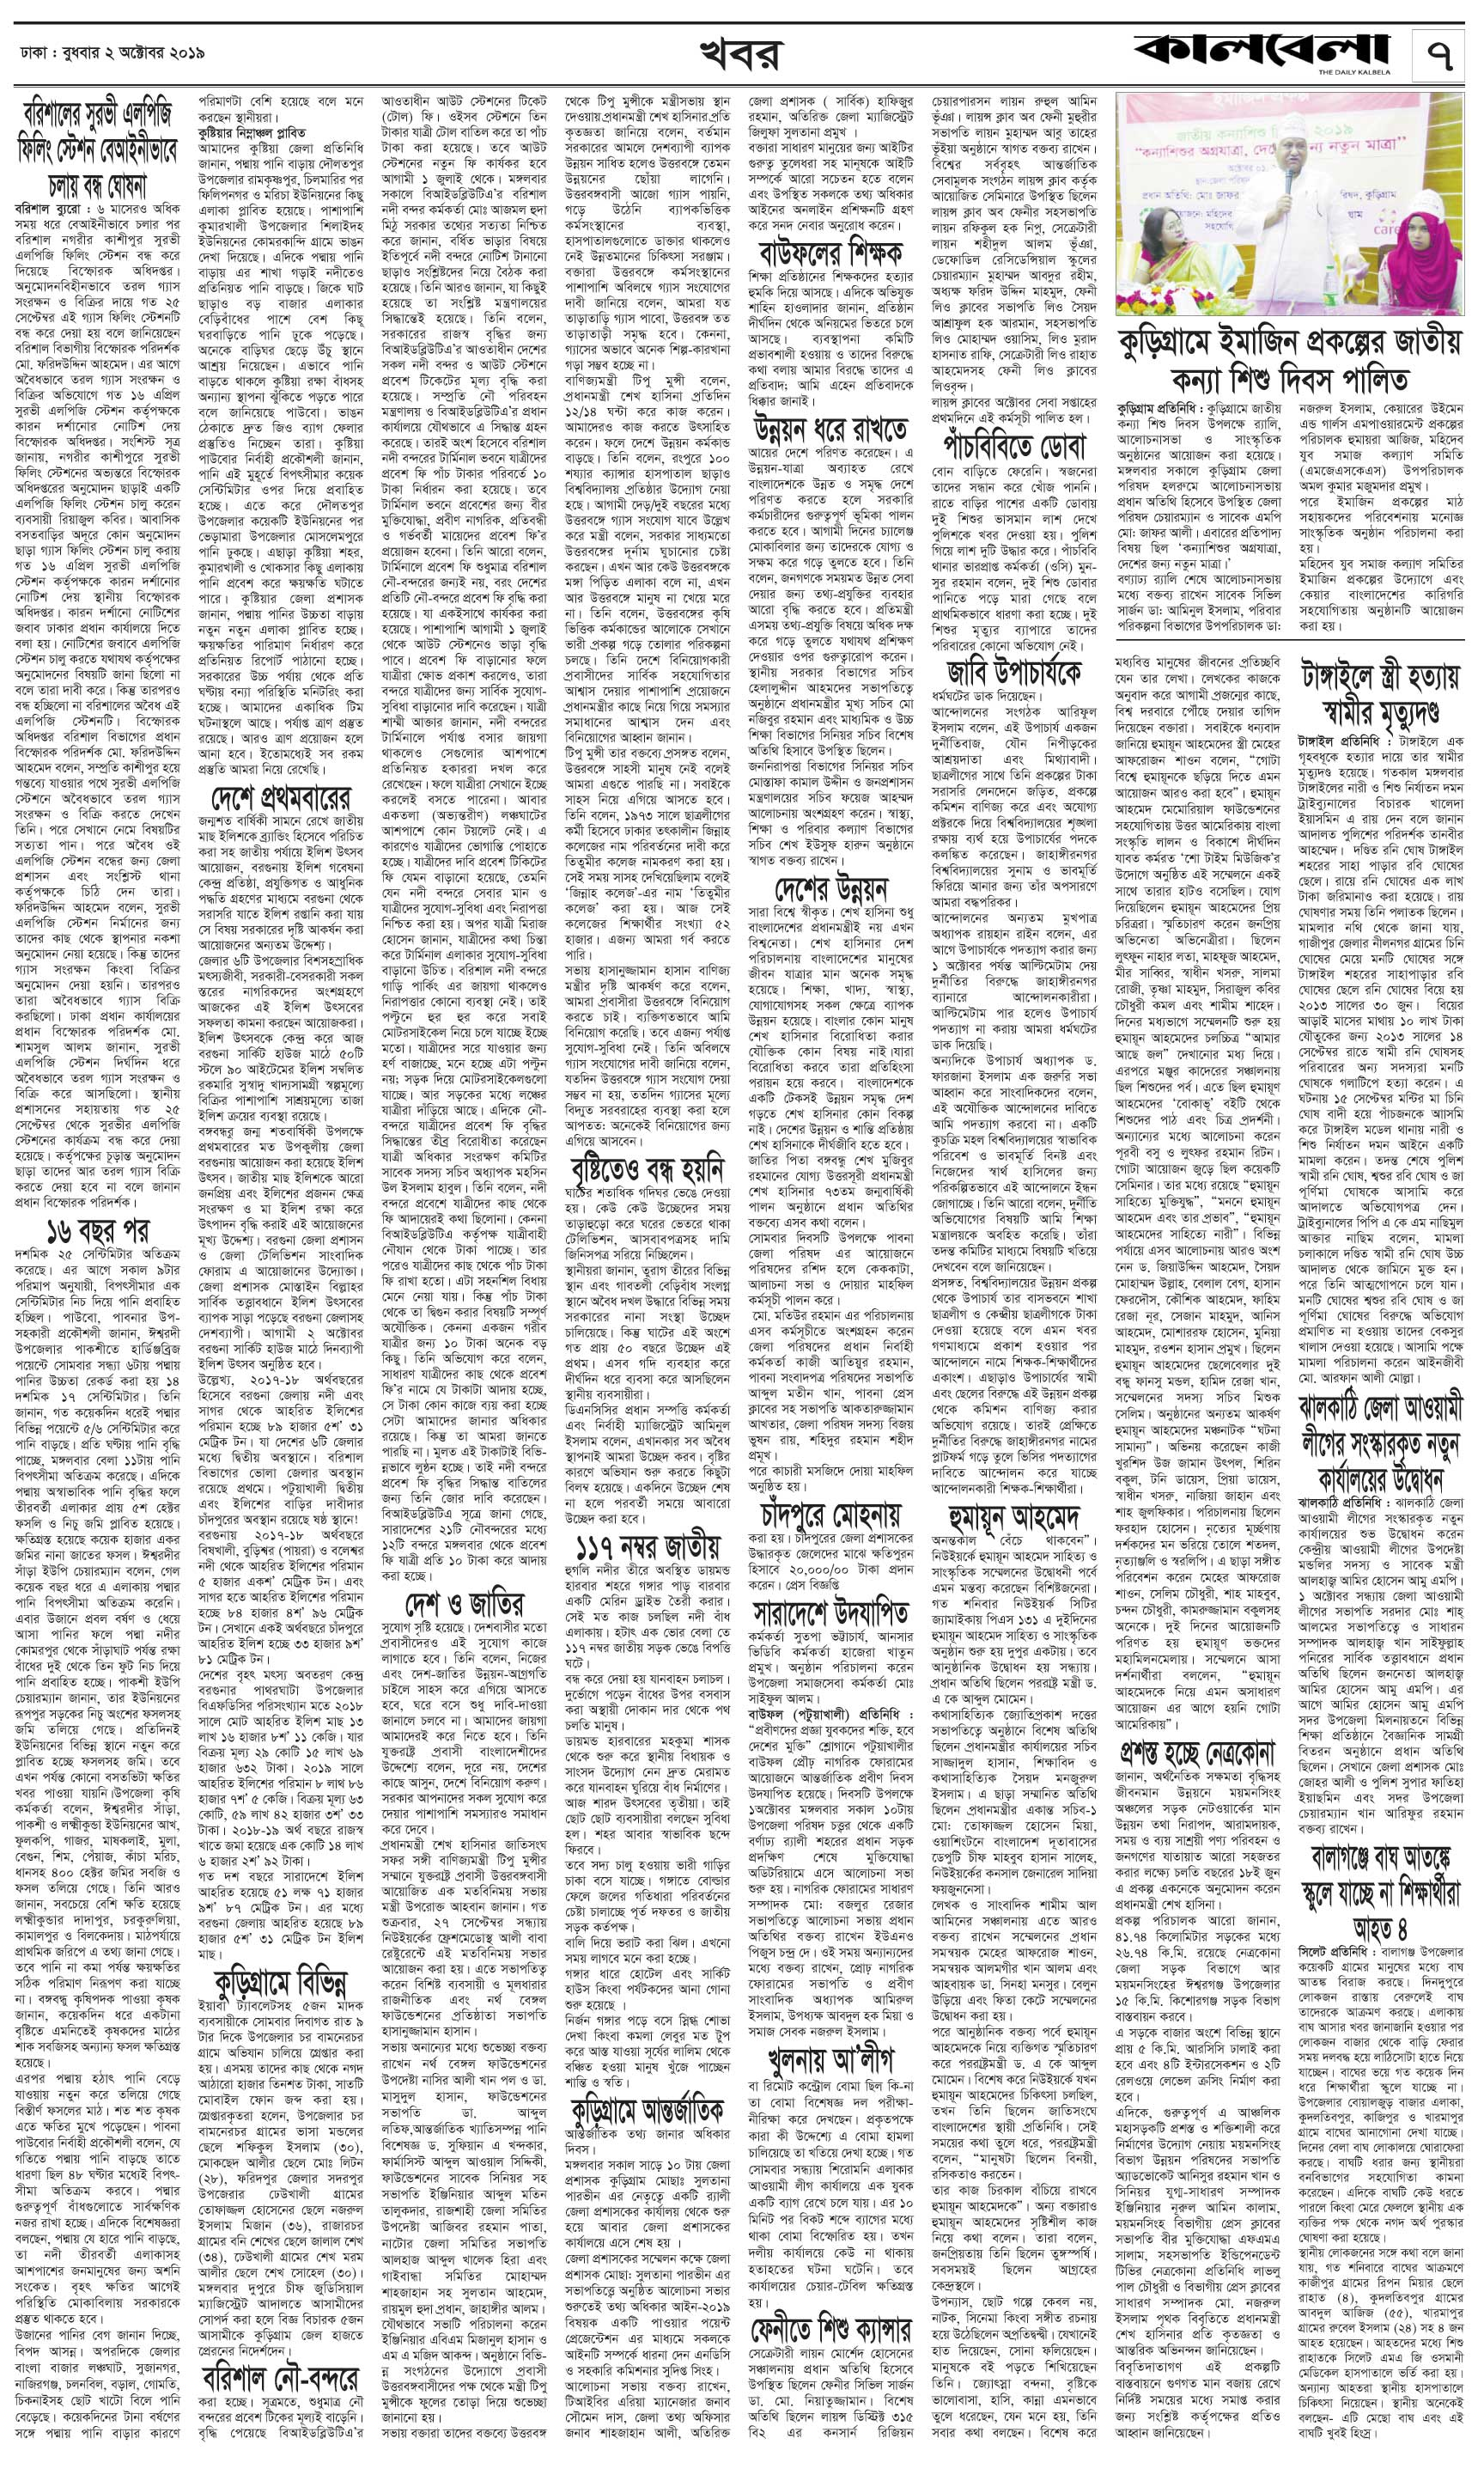 Page-7-(1-10-2019).qxd_Page